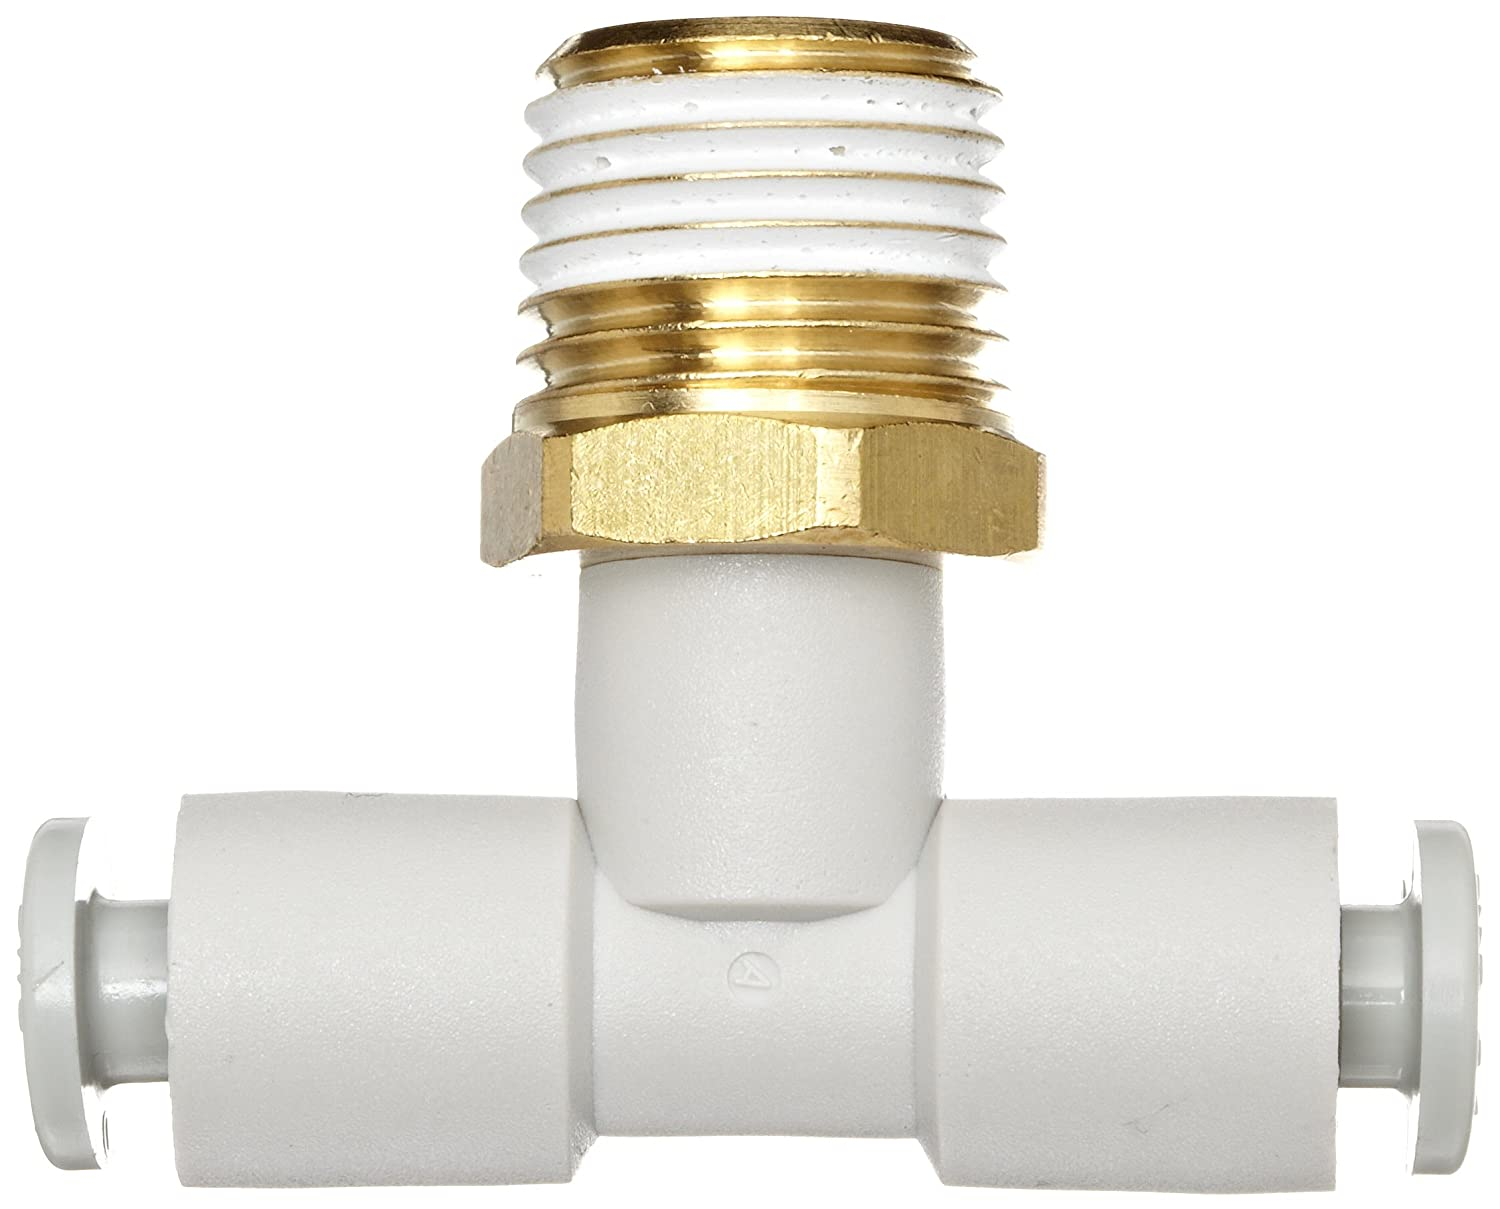 SMC KQ2T06-01AS PBT /& Brass Push-to-Connect Tube Fitting with Sealant 6 mm Tube OD x 1//8 BSPT Male Branch Tee